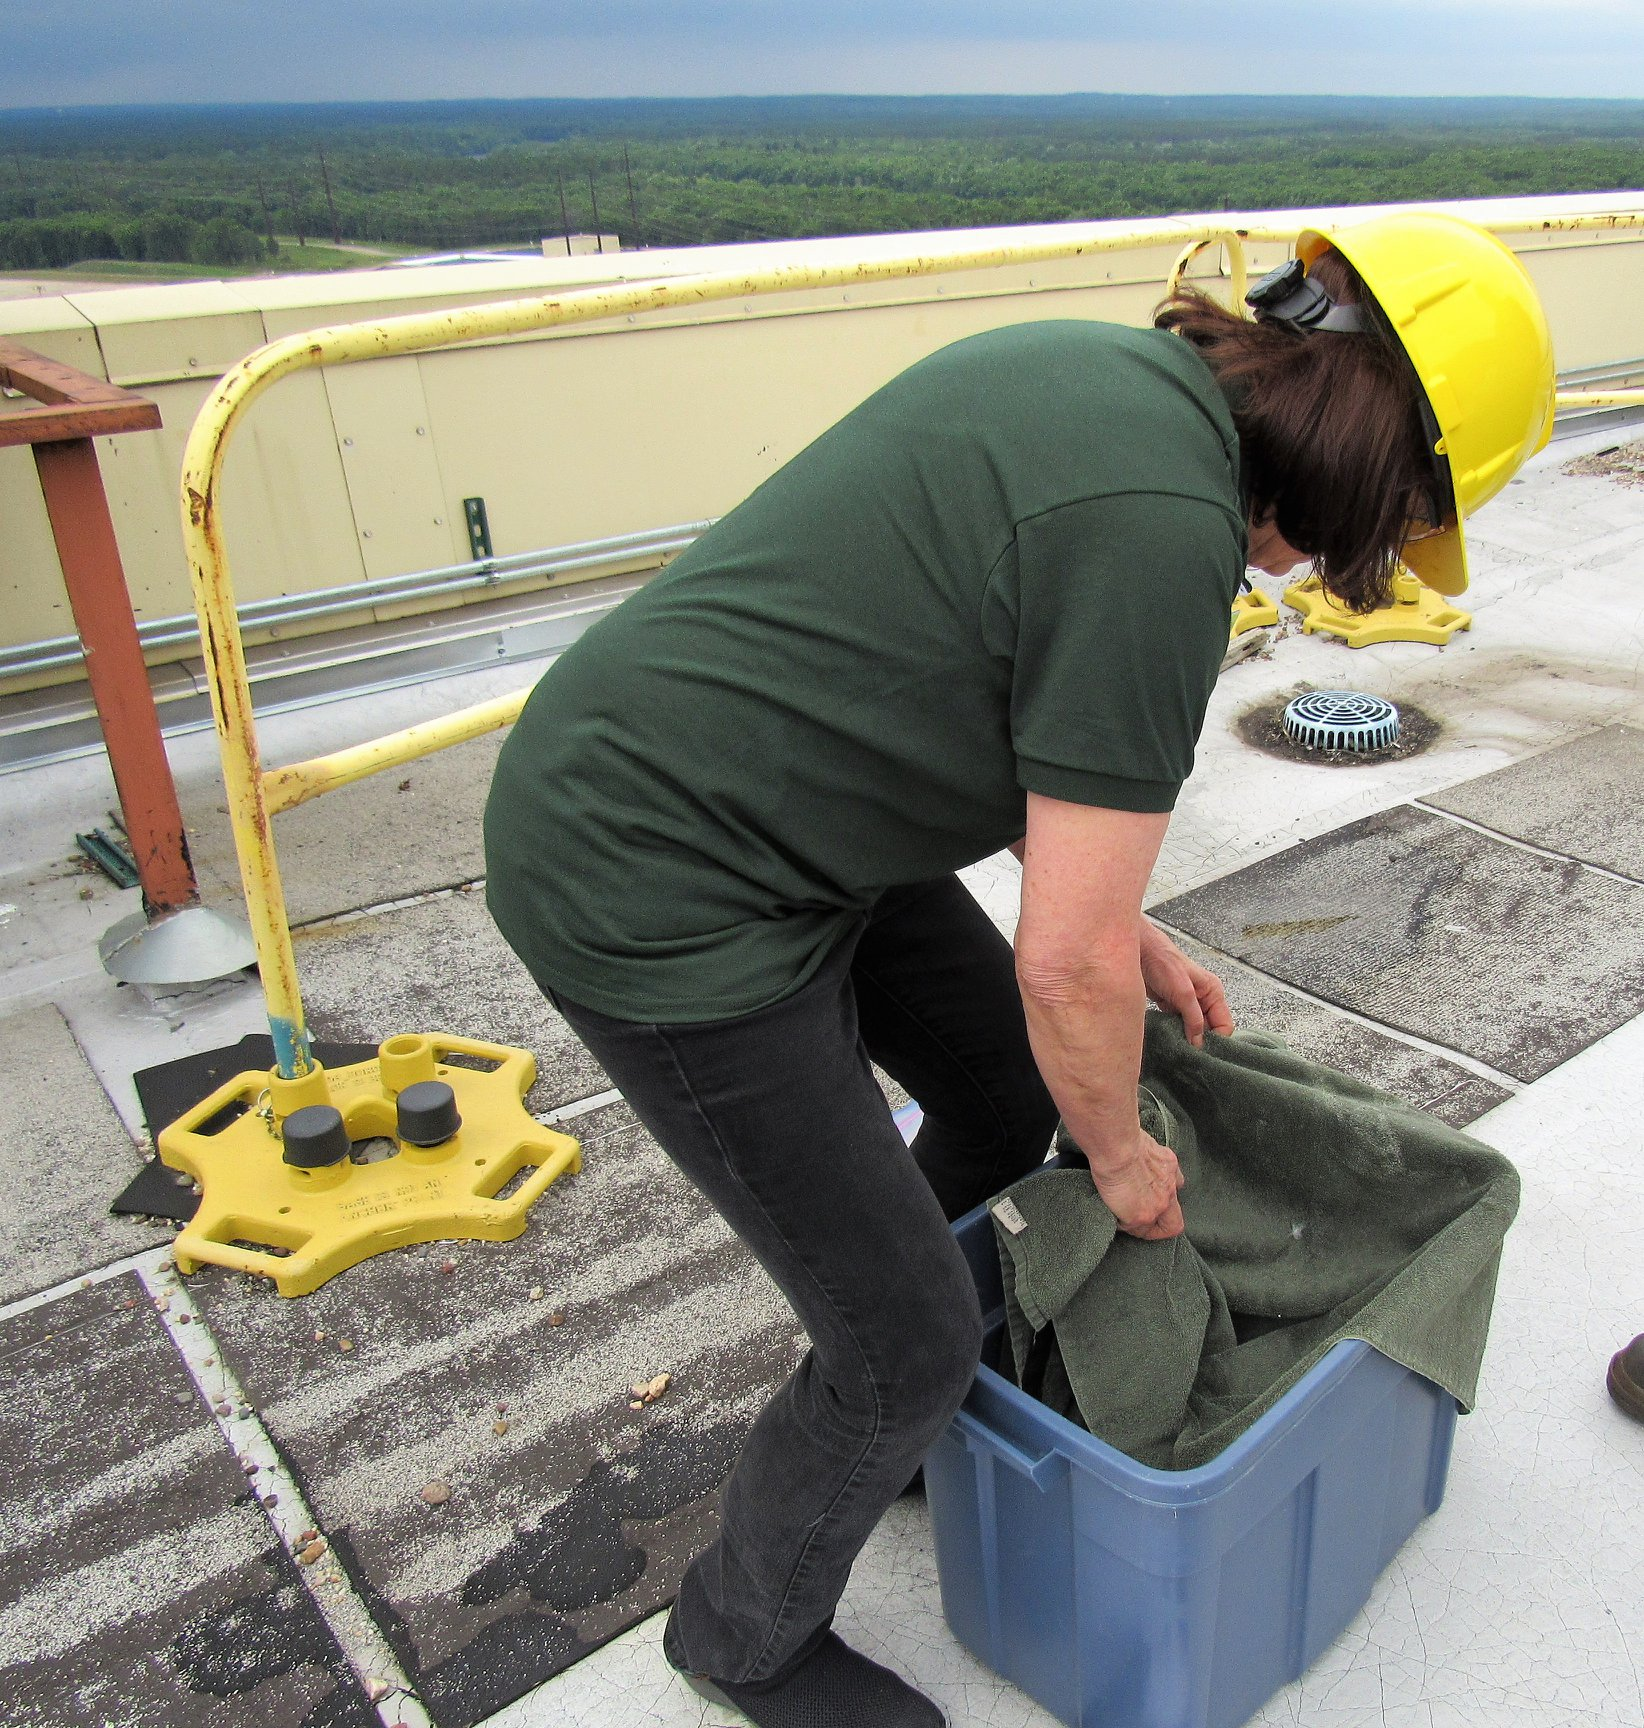 On the roof of the Power Plant and preparing to take the chick from the transport box.